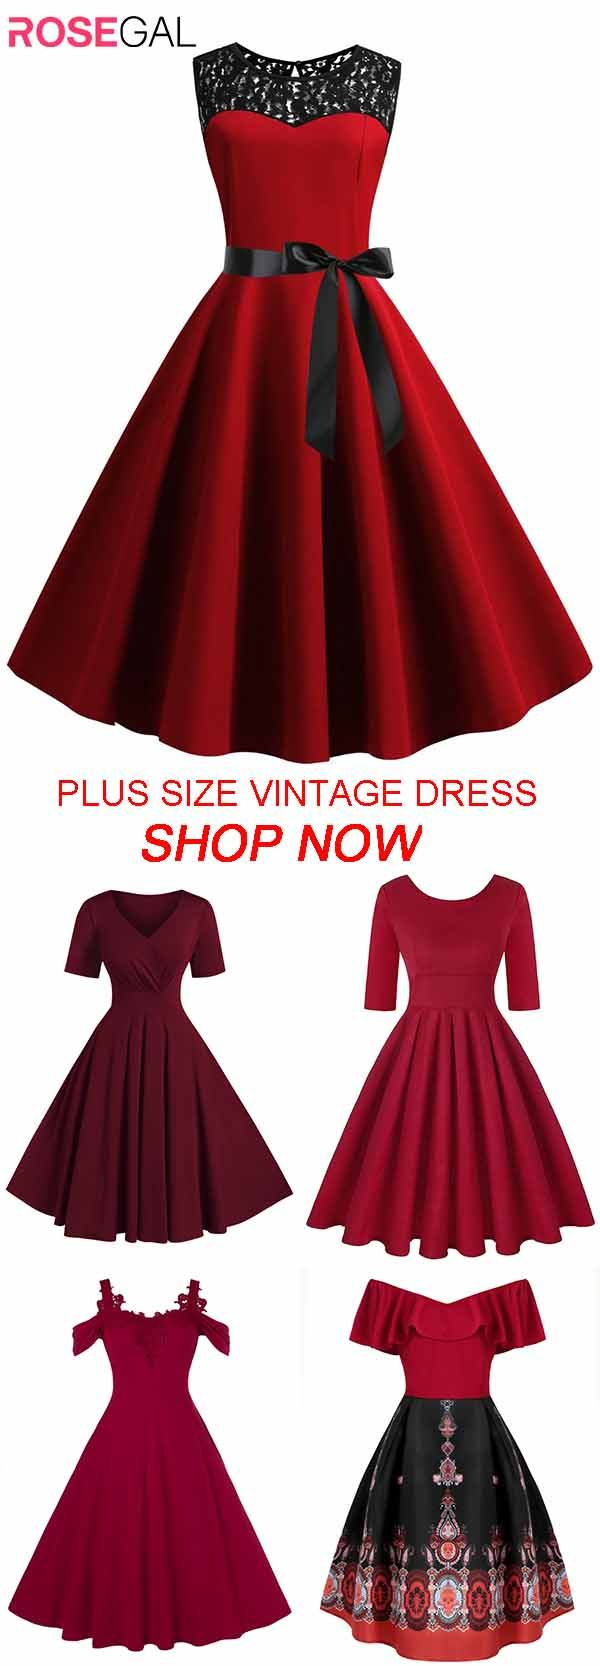 Rosegal Plus size vintage dresses ideas